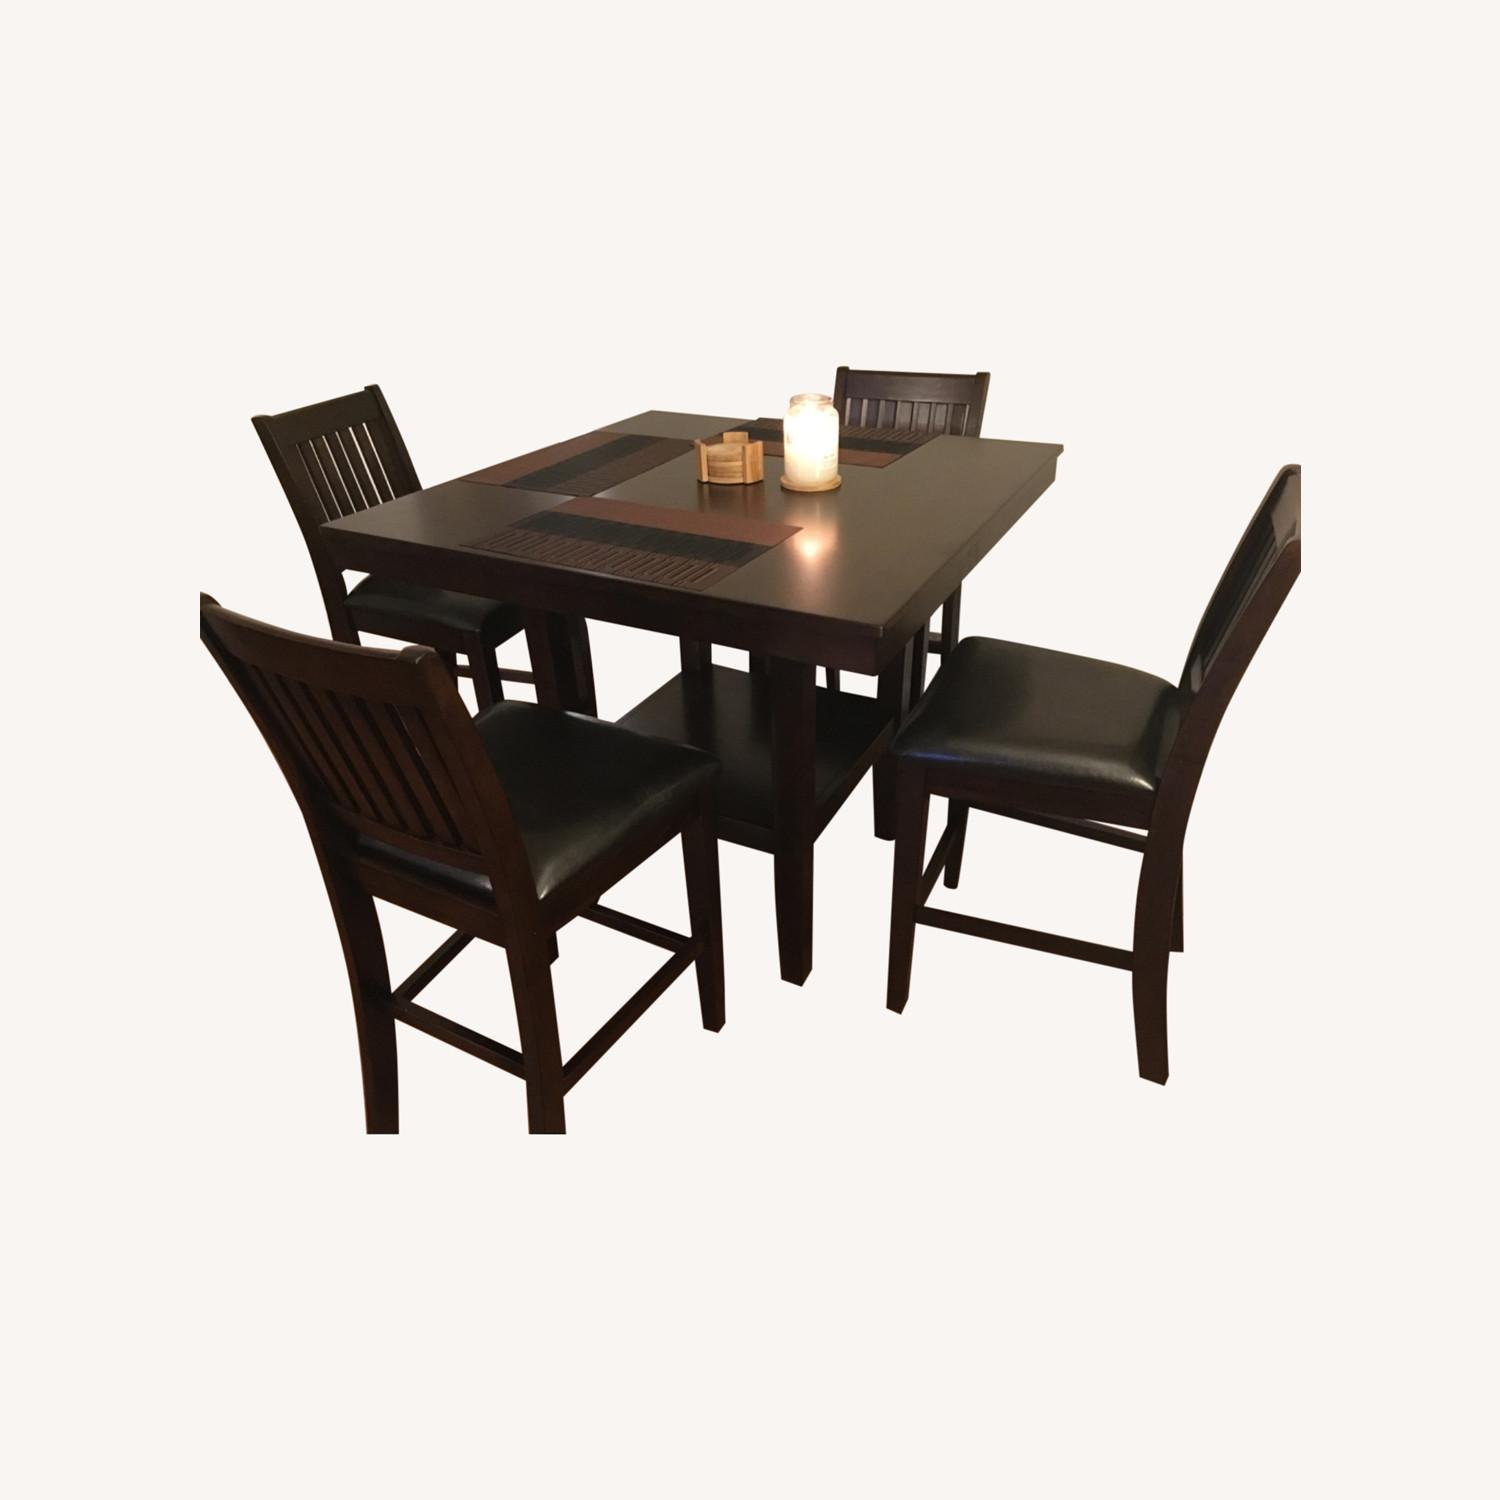 Wayfair 5 Piece Warm Cherry Dining Set - image-0